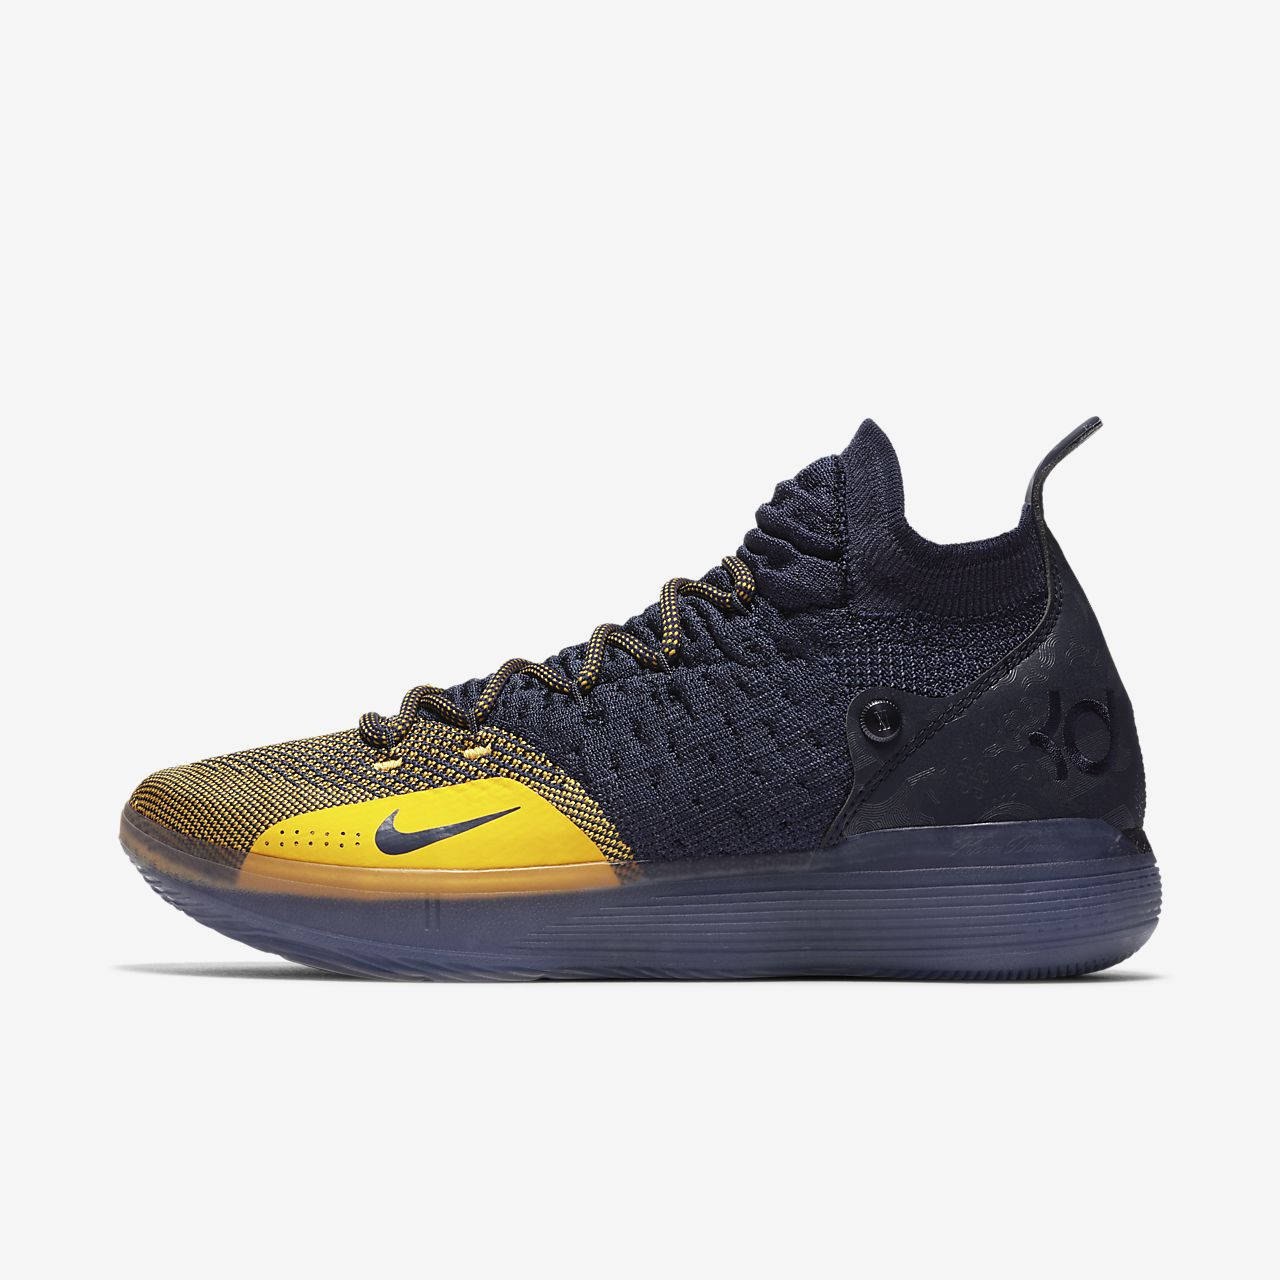 0ba18a613d5e Nike Zoom KD11 Basketball Shoe. Nike.com GB